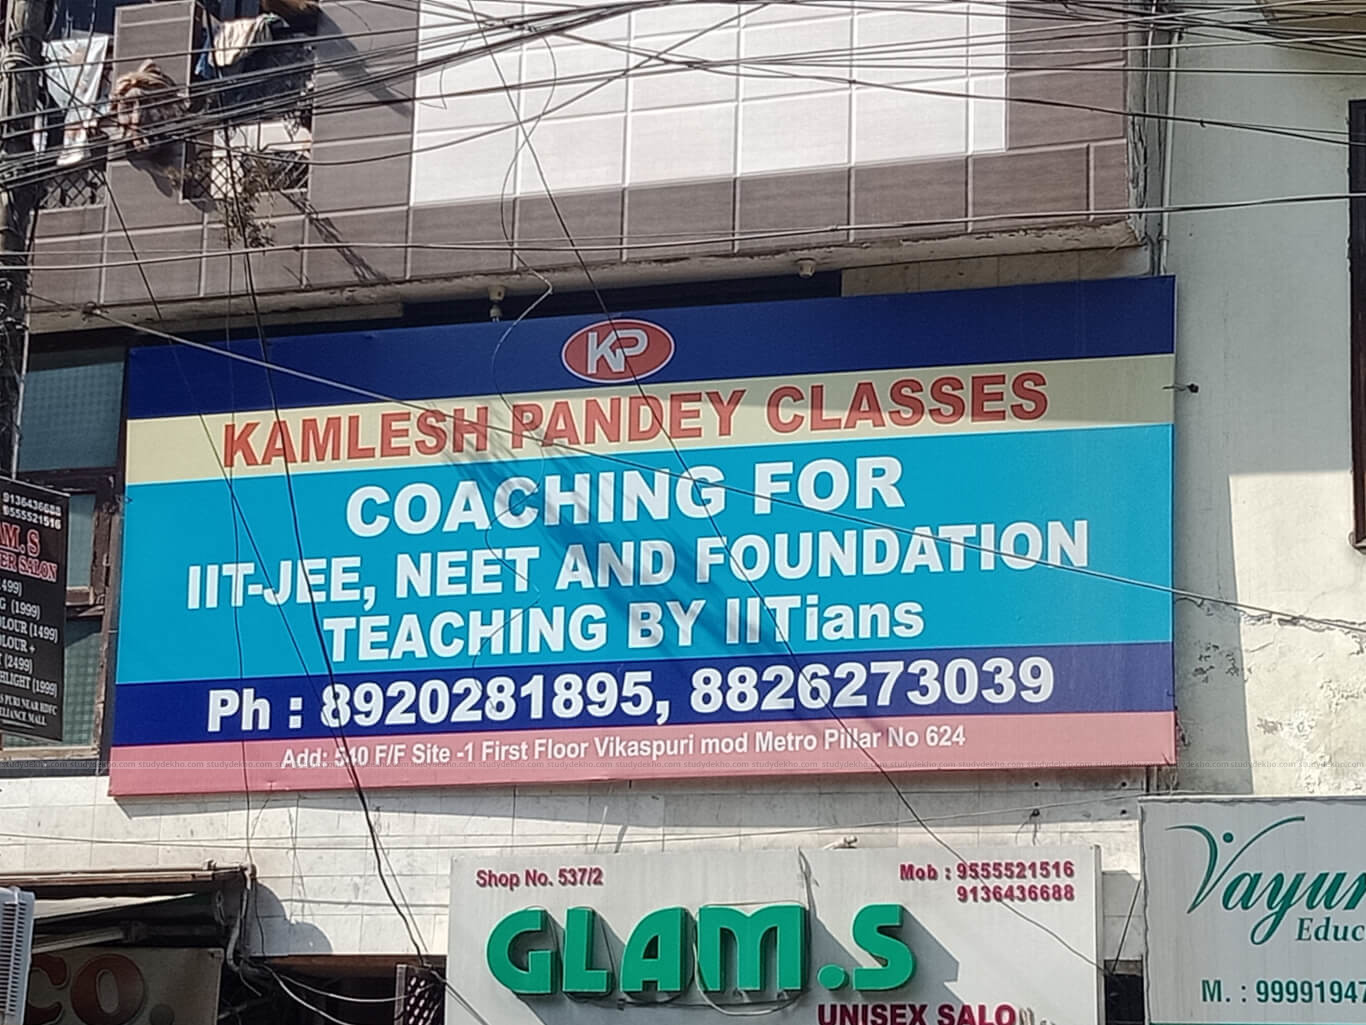 KAMKESH PANDEY CLASSES Logo